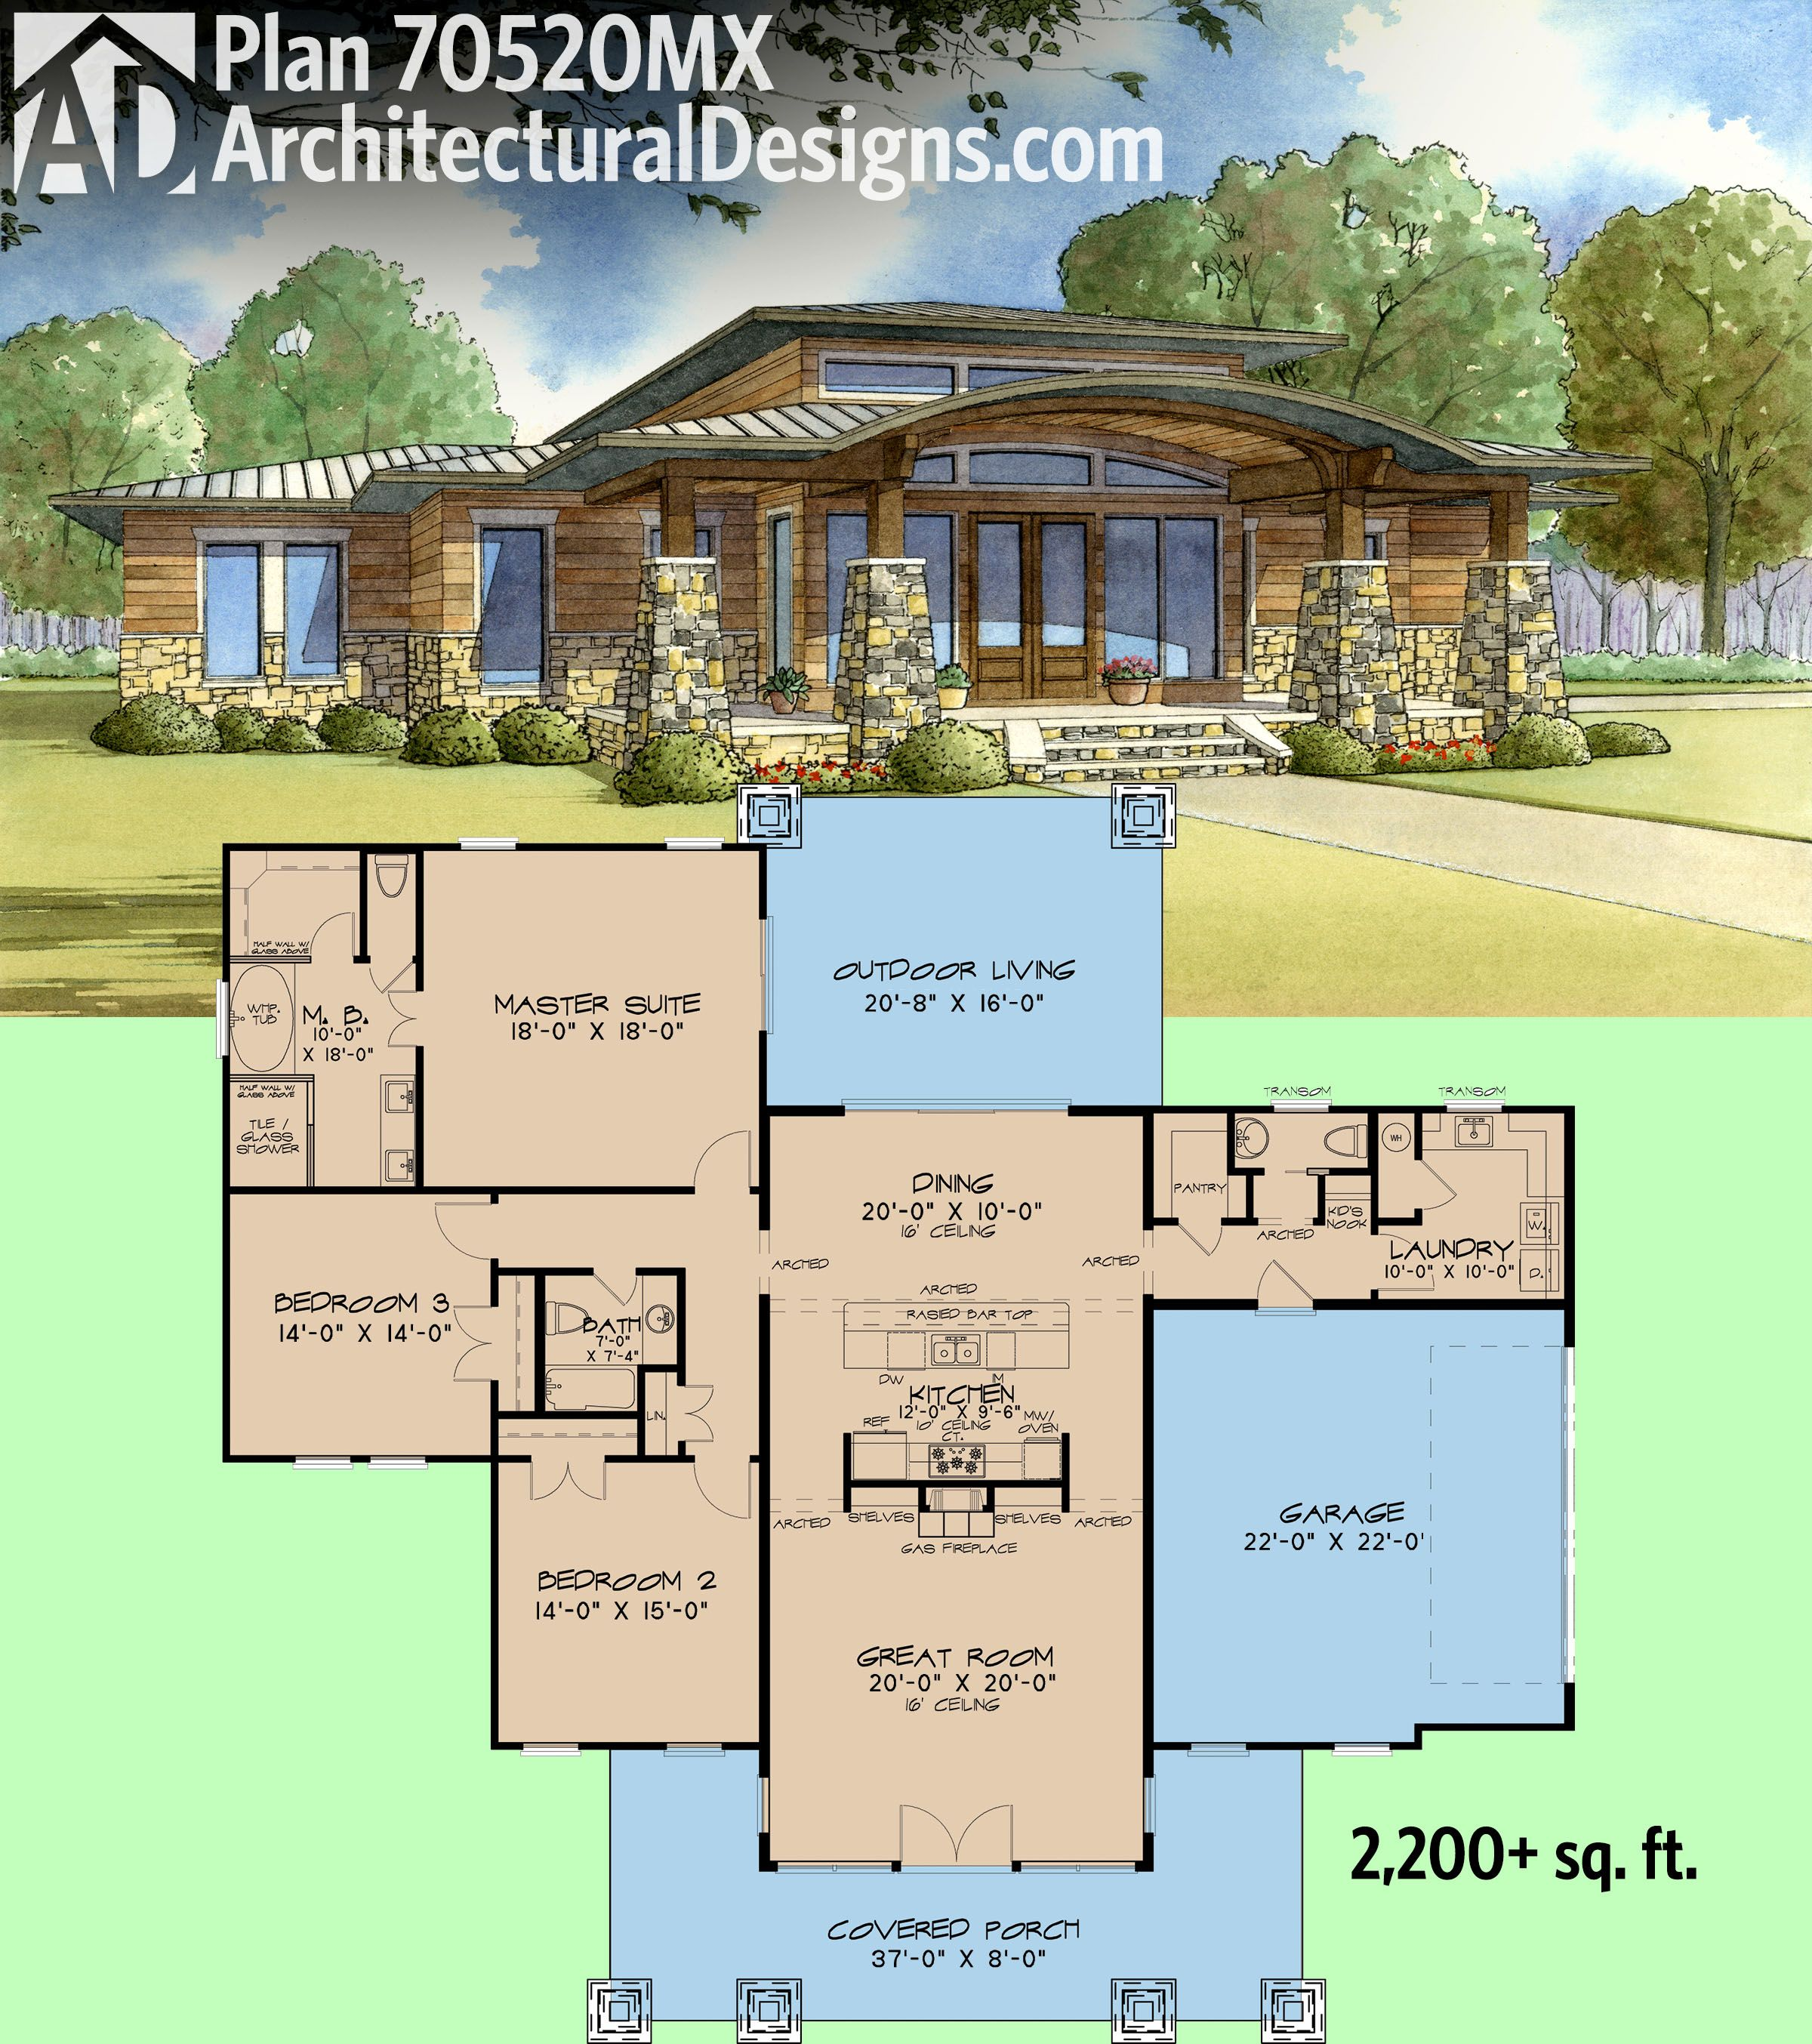 Architectural Designs Modern House Plan 70520MK Has 16u0027 Ceilings In The  Center Portion And 10